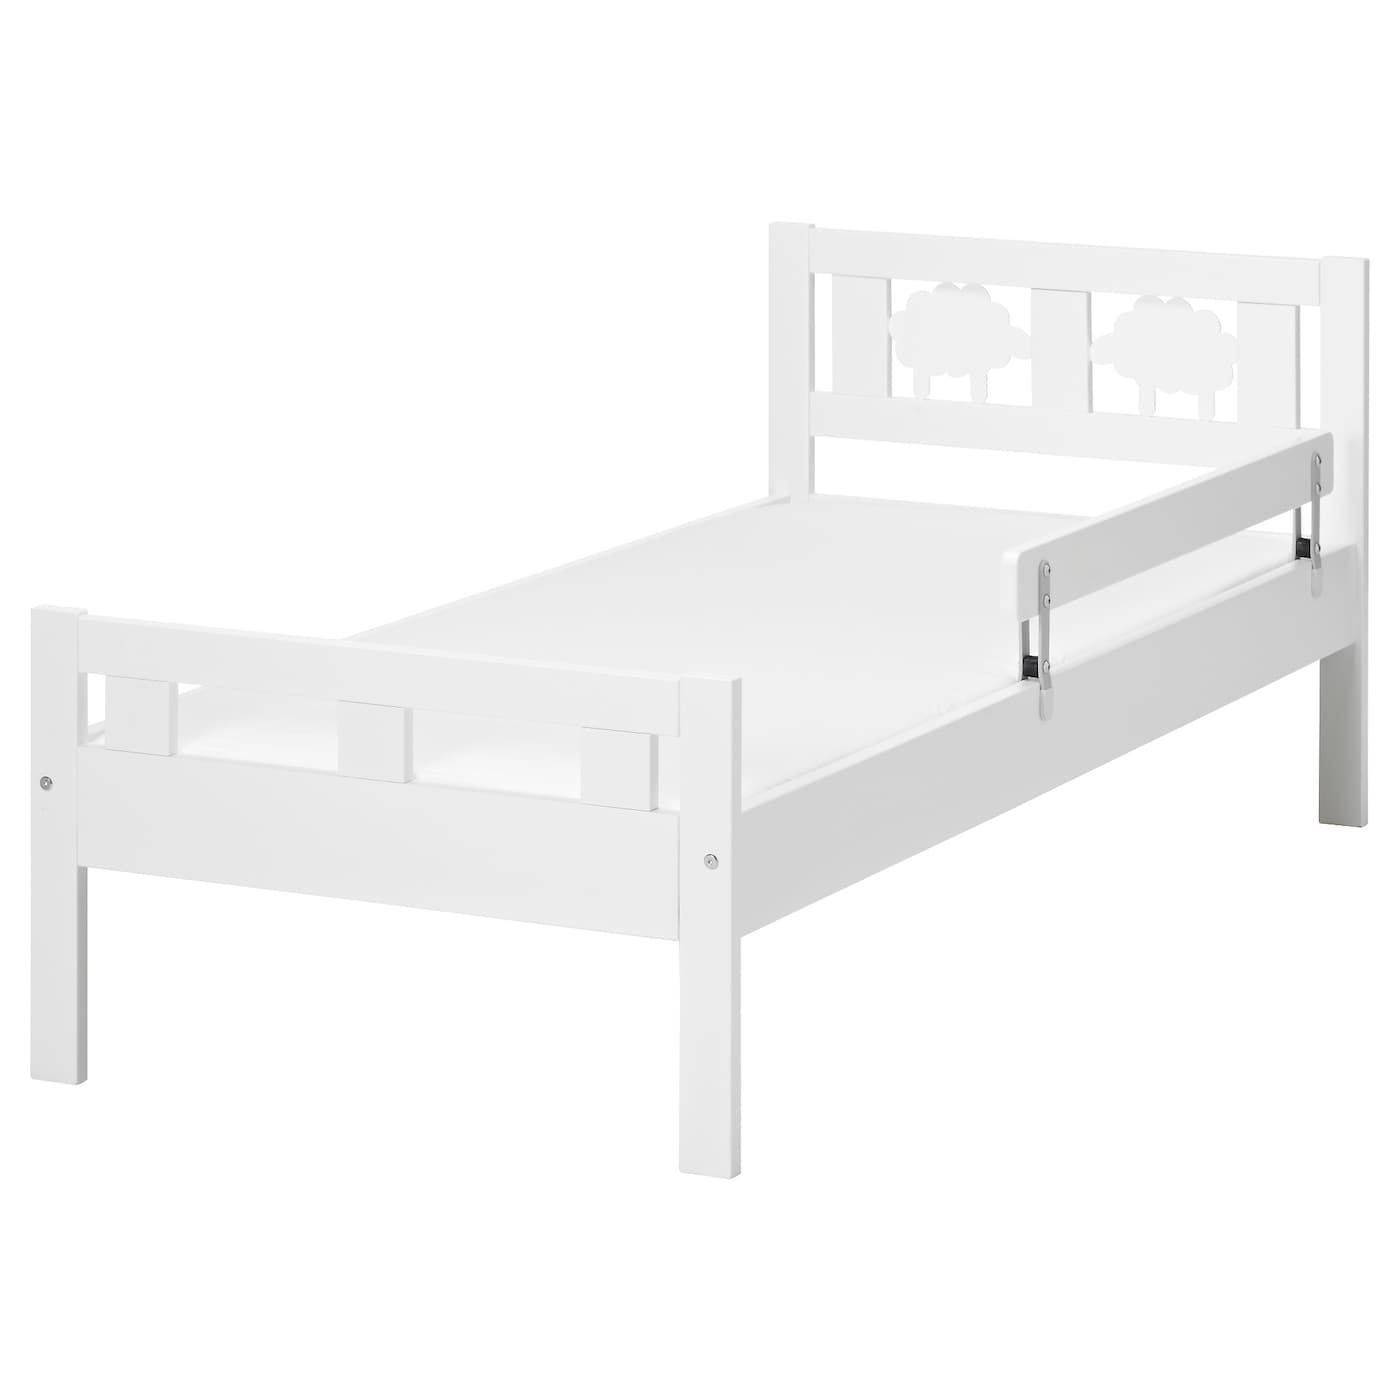 KRITTER Bed frame and guard rail, white